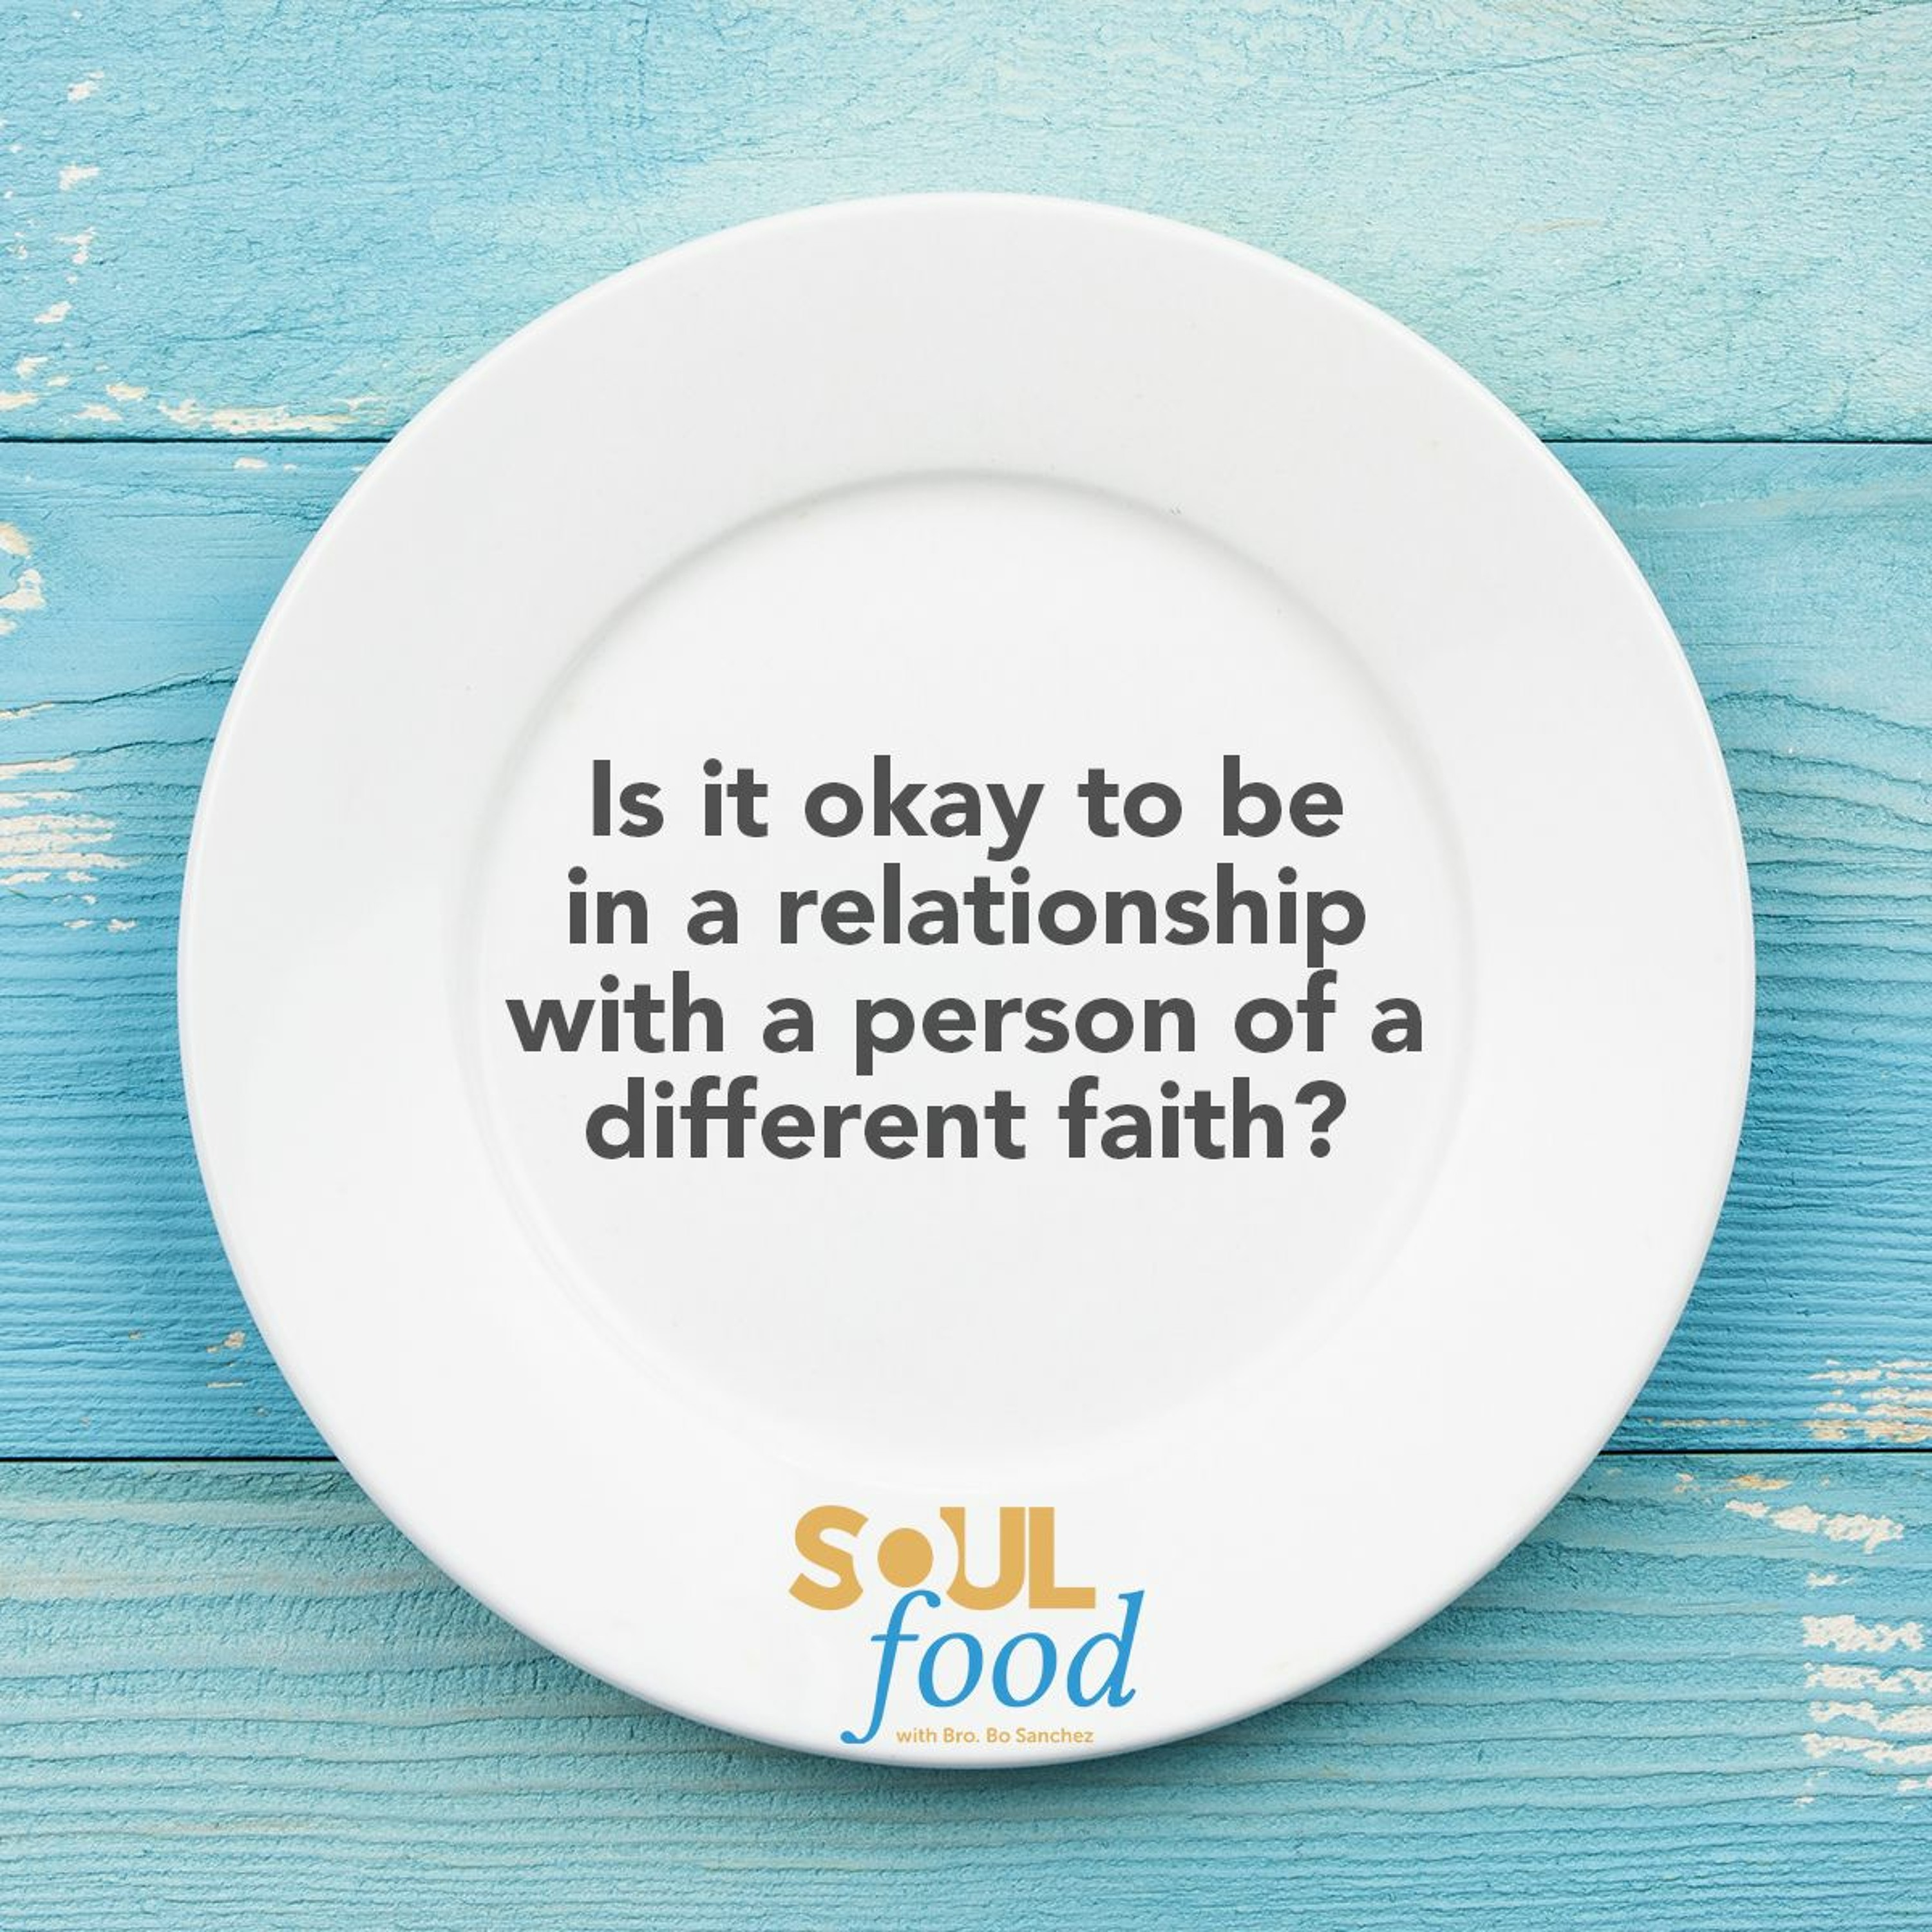 Soul Food S01E35 Is it okay to be in a relationship with a person of a different faith?